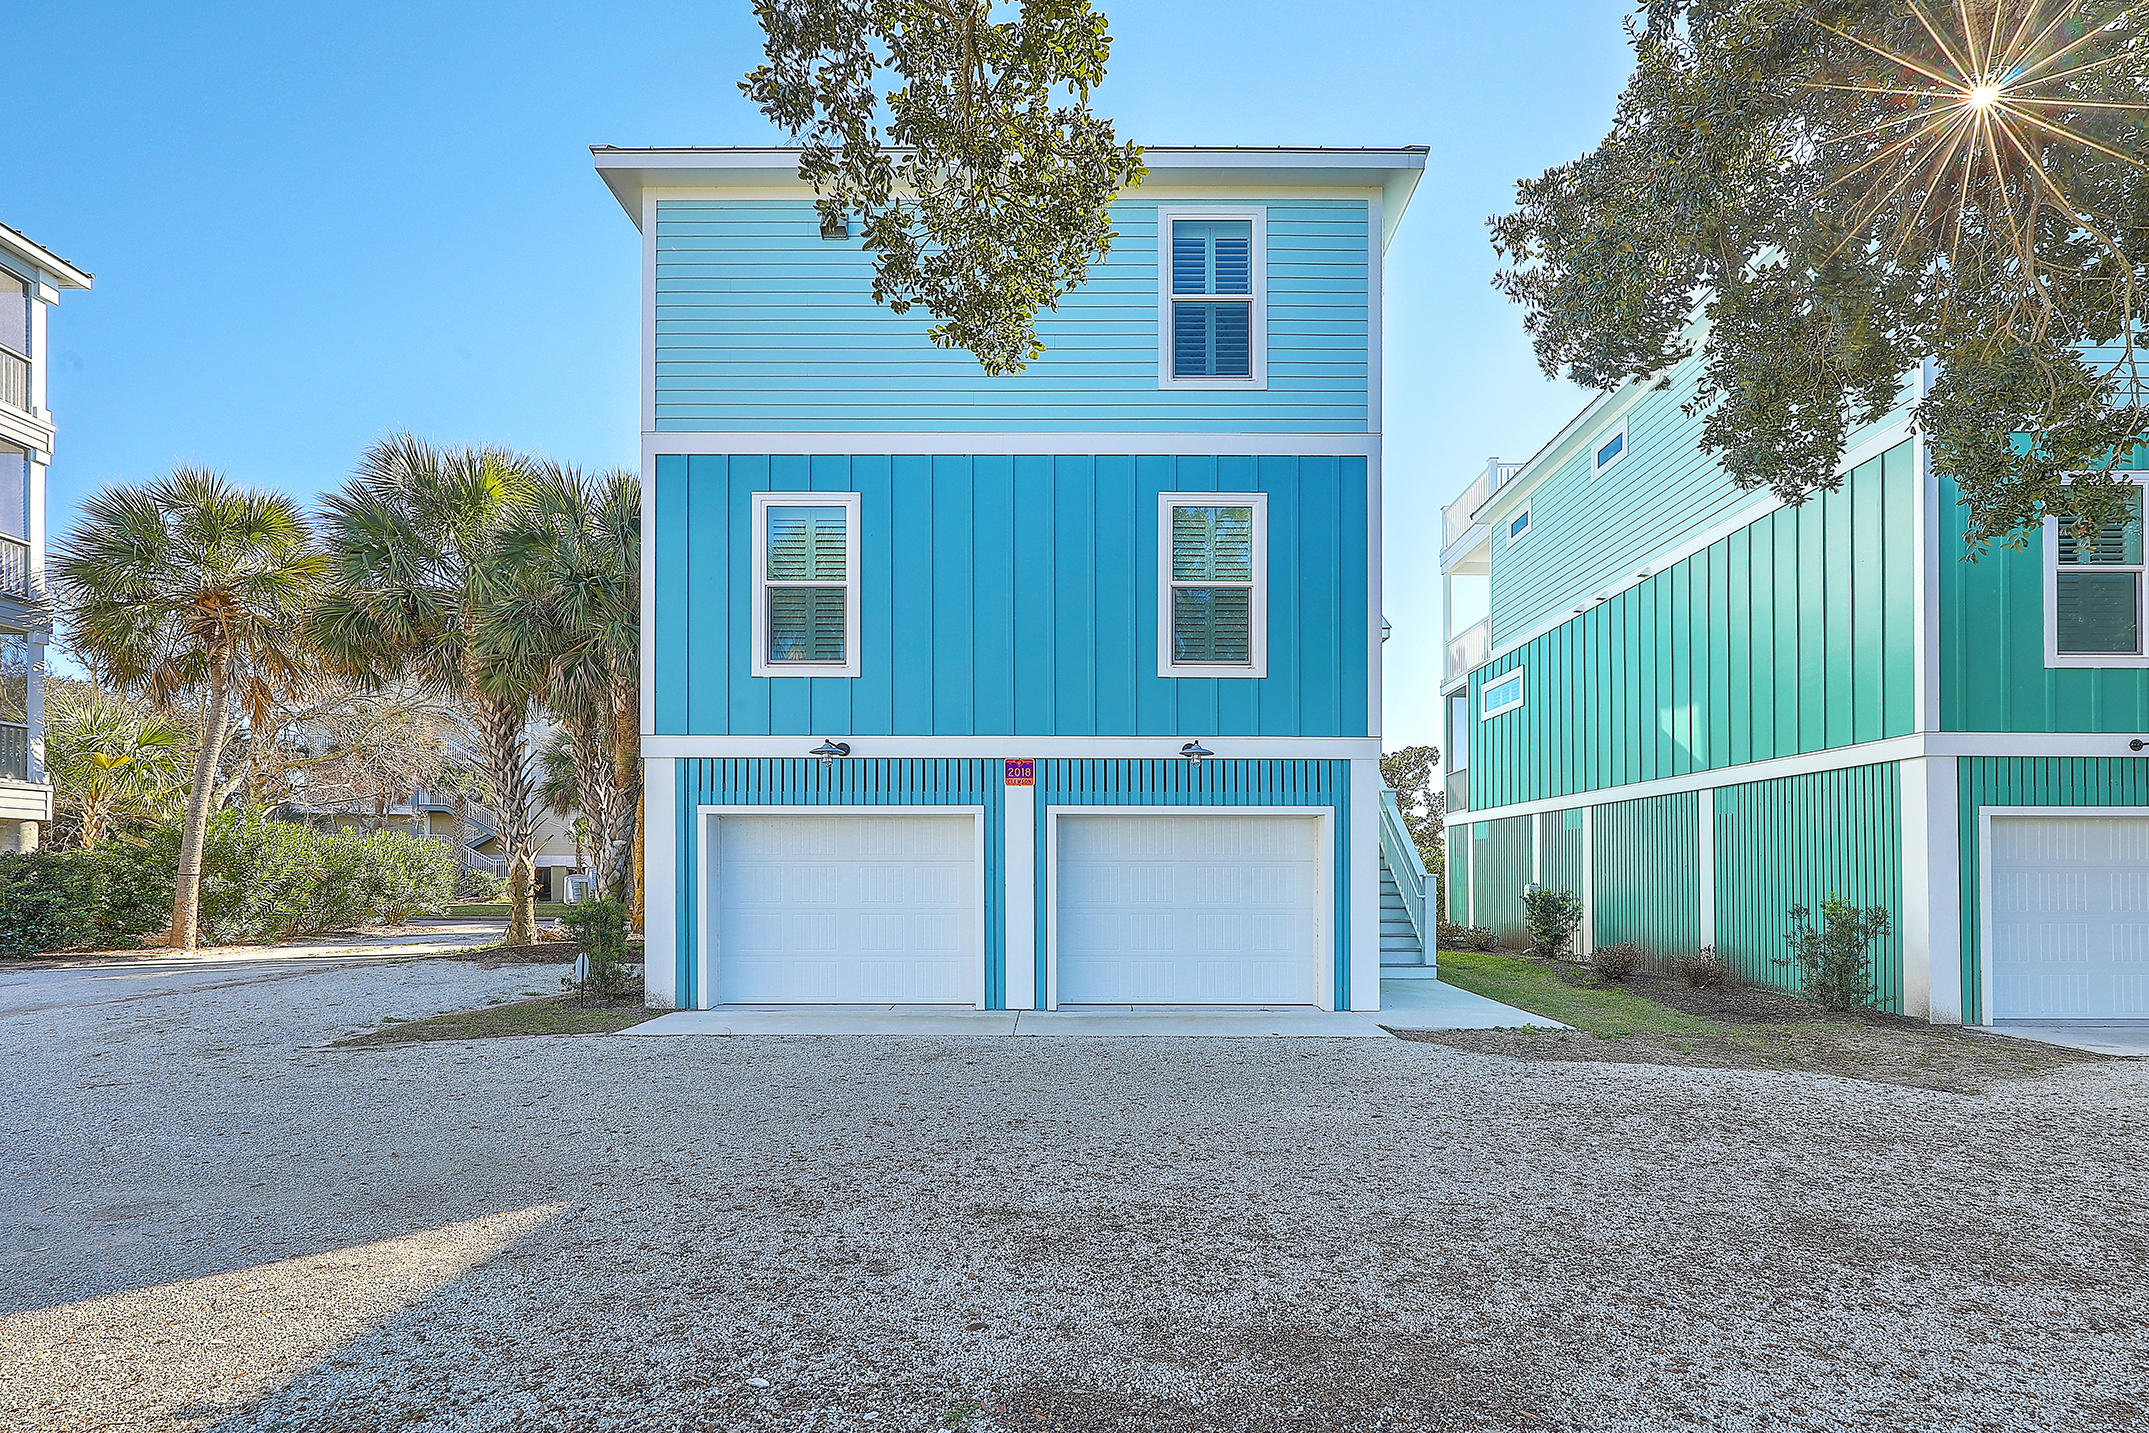 Mariners Cay Homes For Sale - 1002 Mariners Cay, Folly Beach, SC - 5